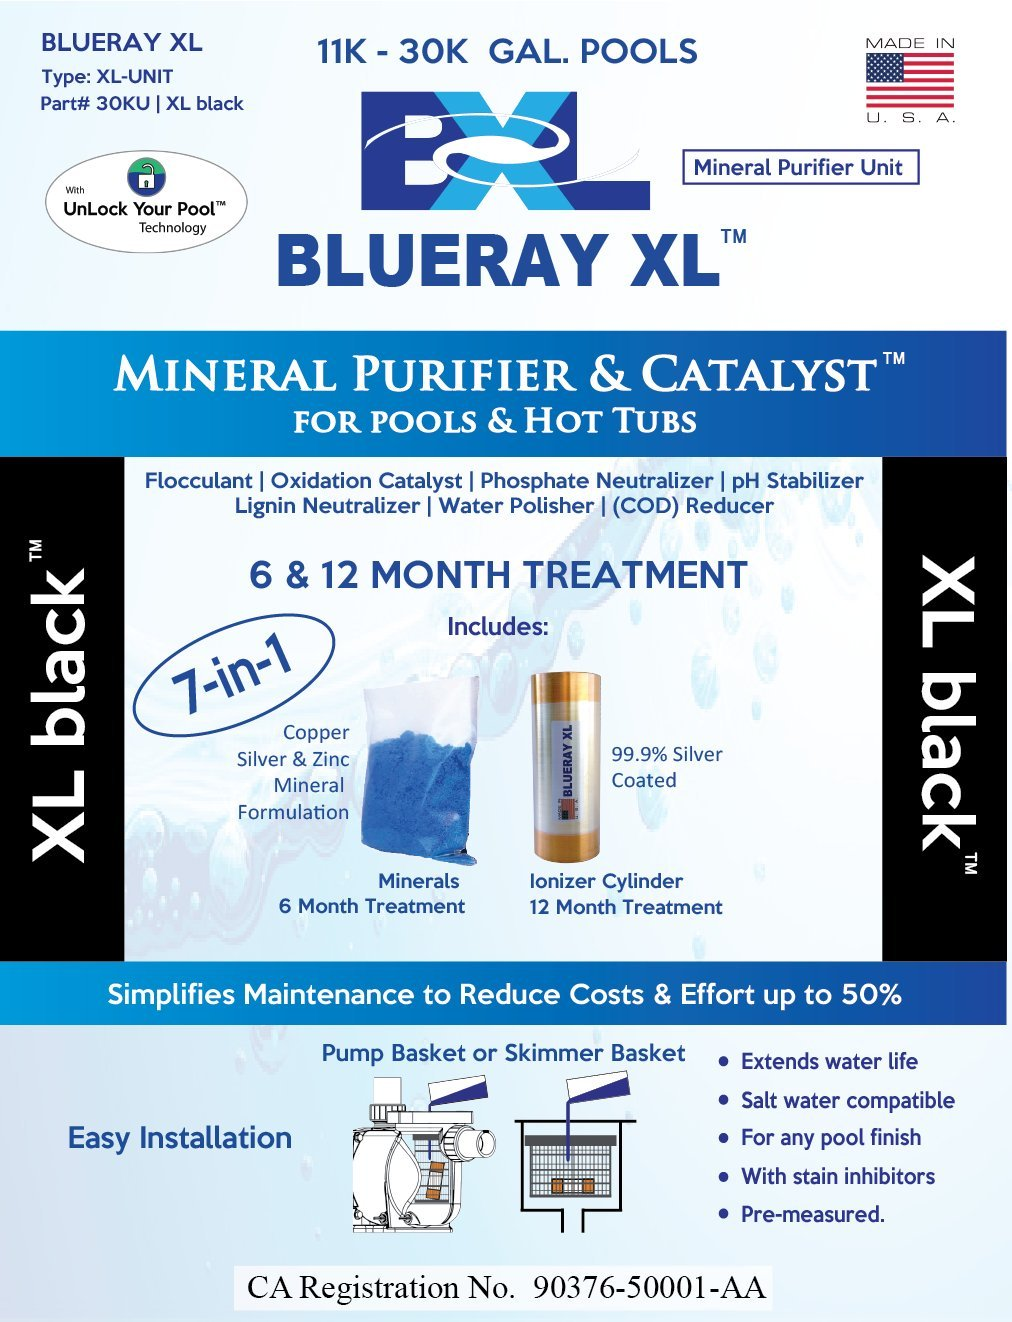 Blueray XL - XL Black | Mineral Purifier & Catalyst for Pools and Hot Tubs ... by Blueray XL